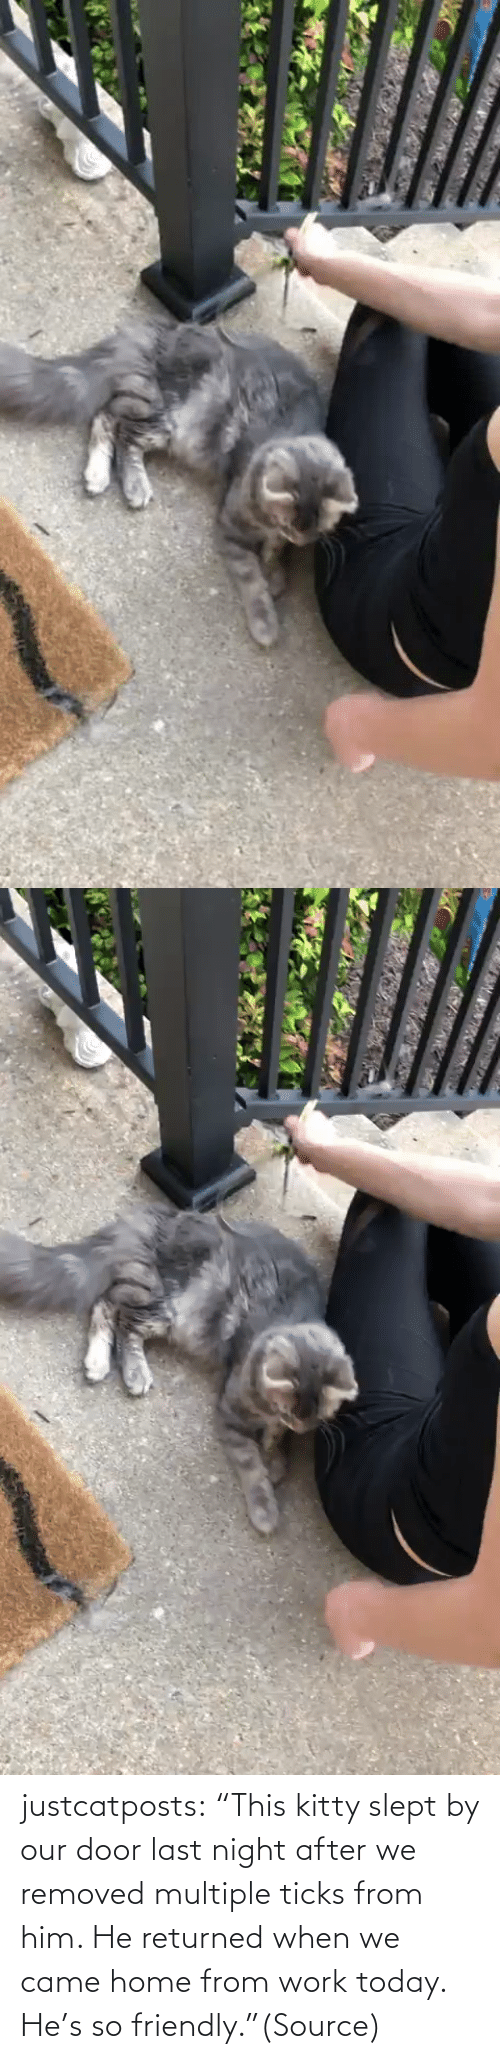 "Múltiple: justcatposts:  ""This kitty slept by our door last night after we removed multiple ticks from him. He returned when we came home from work today. He's so friendly.""(Source)"